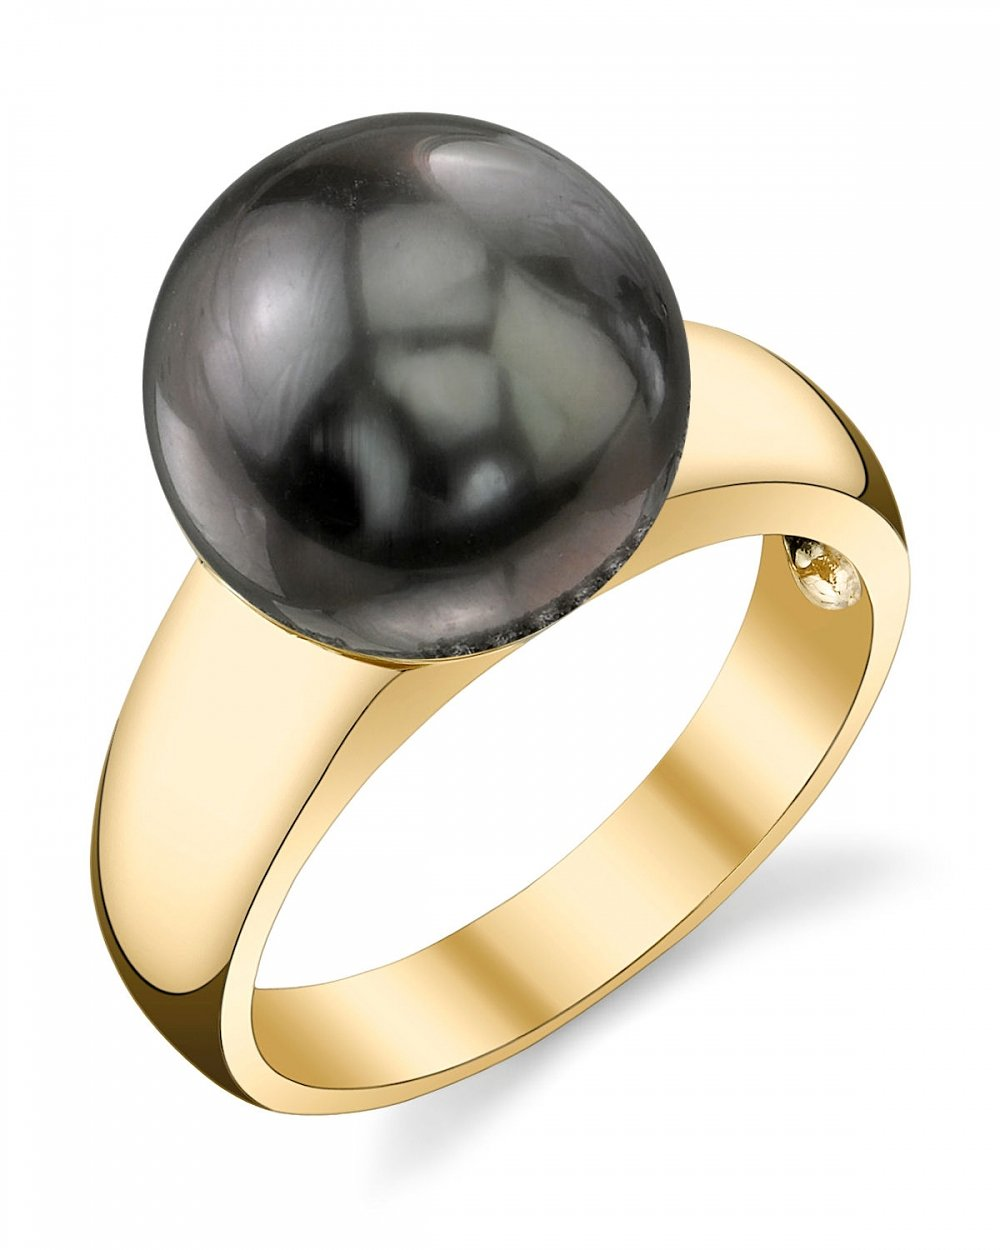 10mm Tahitian South Sea Cultured Pearl Abigail Ring in 14K Gold